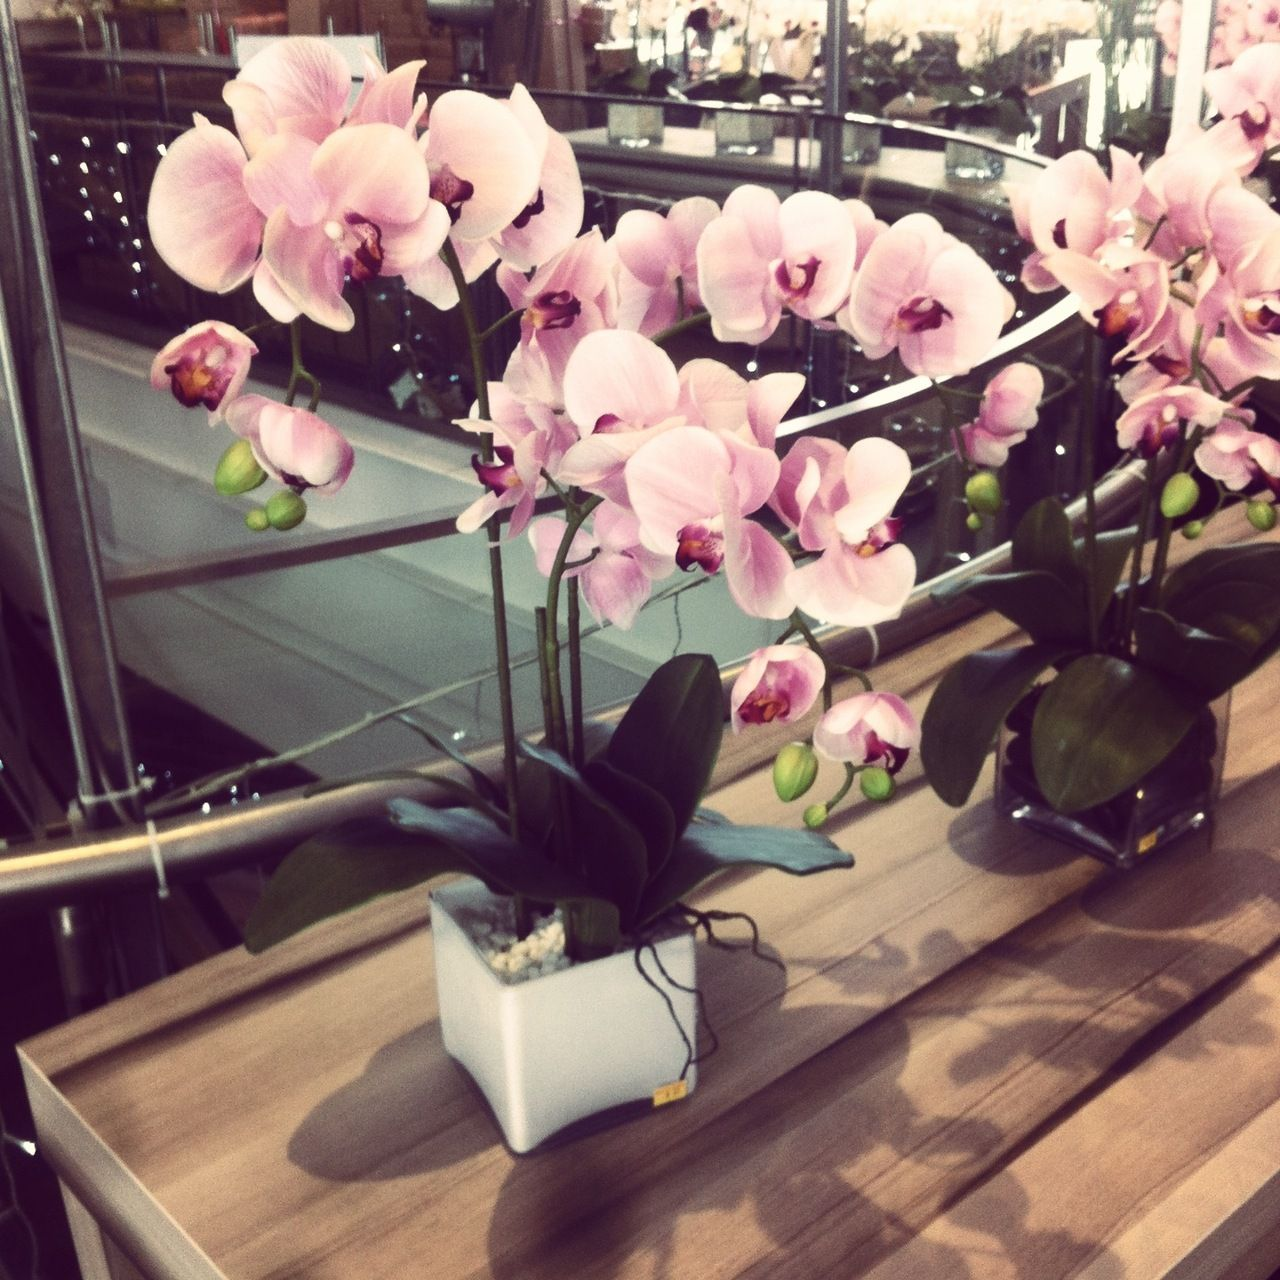 :: nothing like fresh orchids in house ::